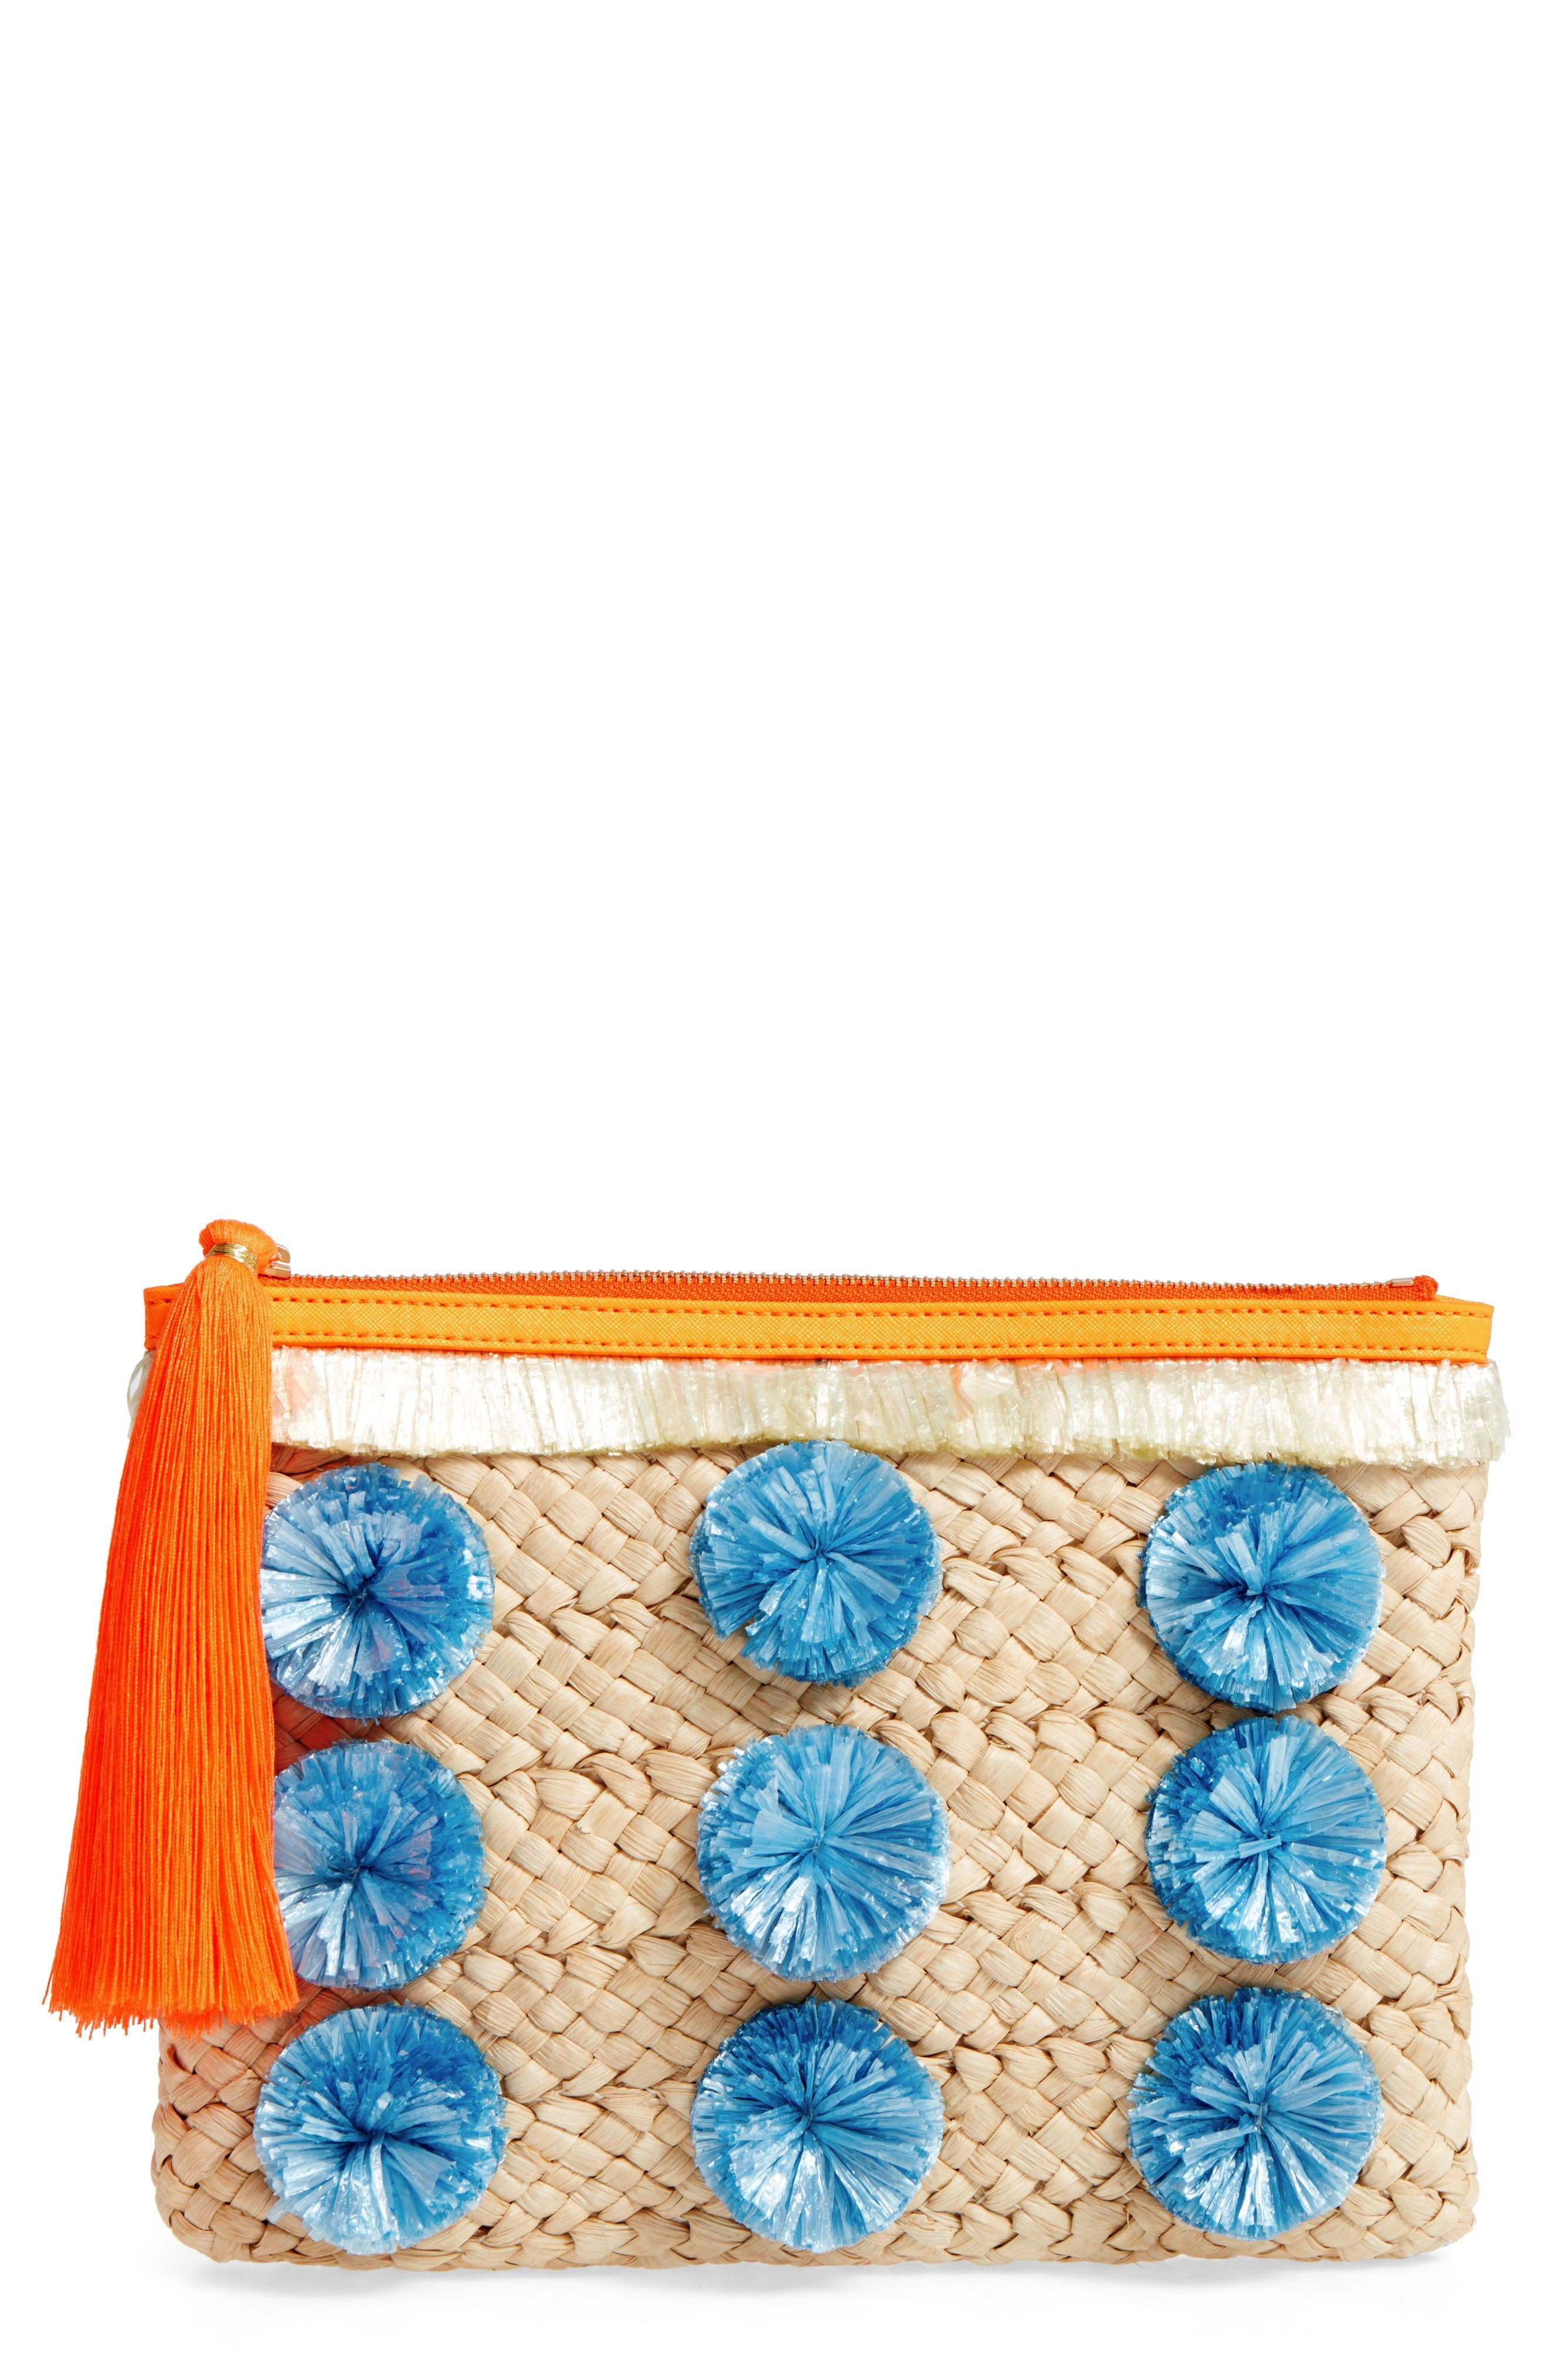 Alternate Image 1 Selected - Milly Pompom Straw Clutch